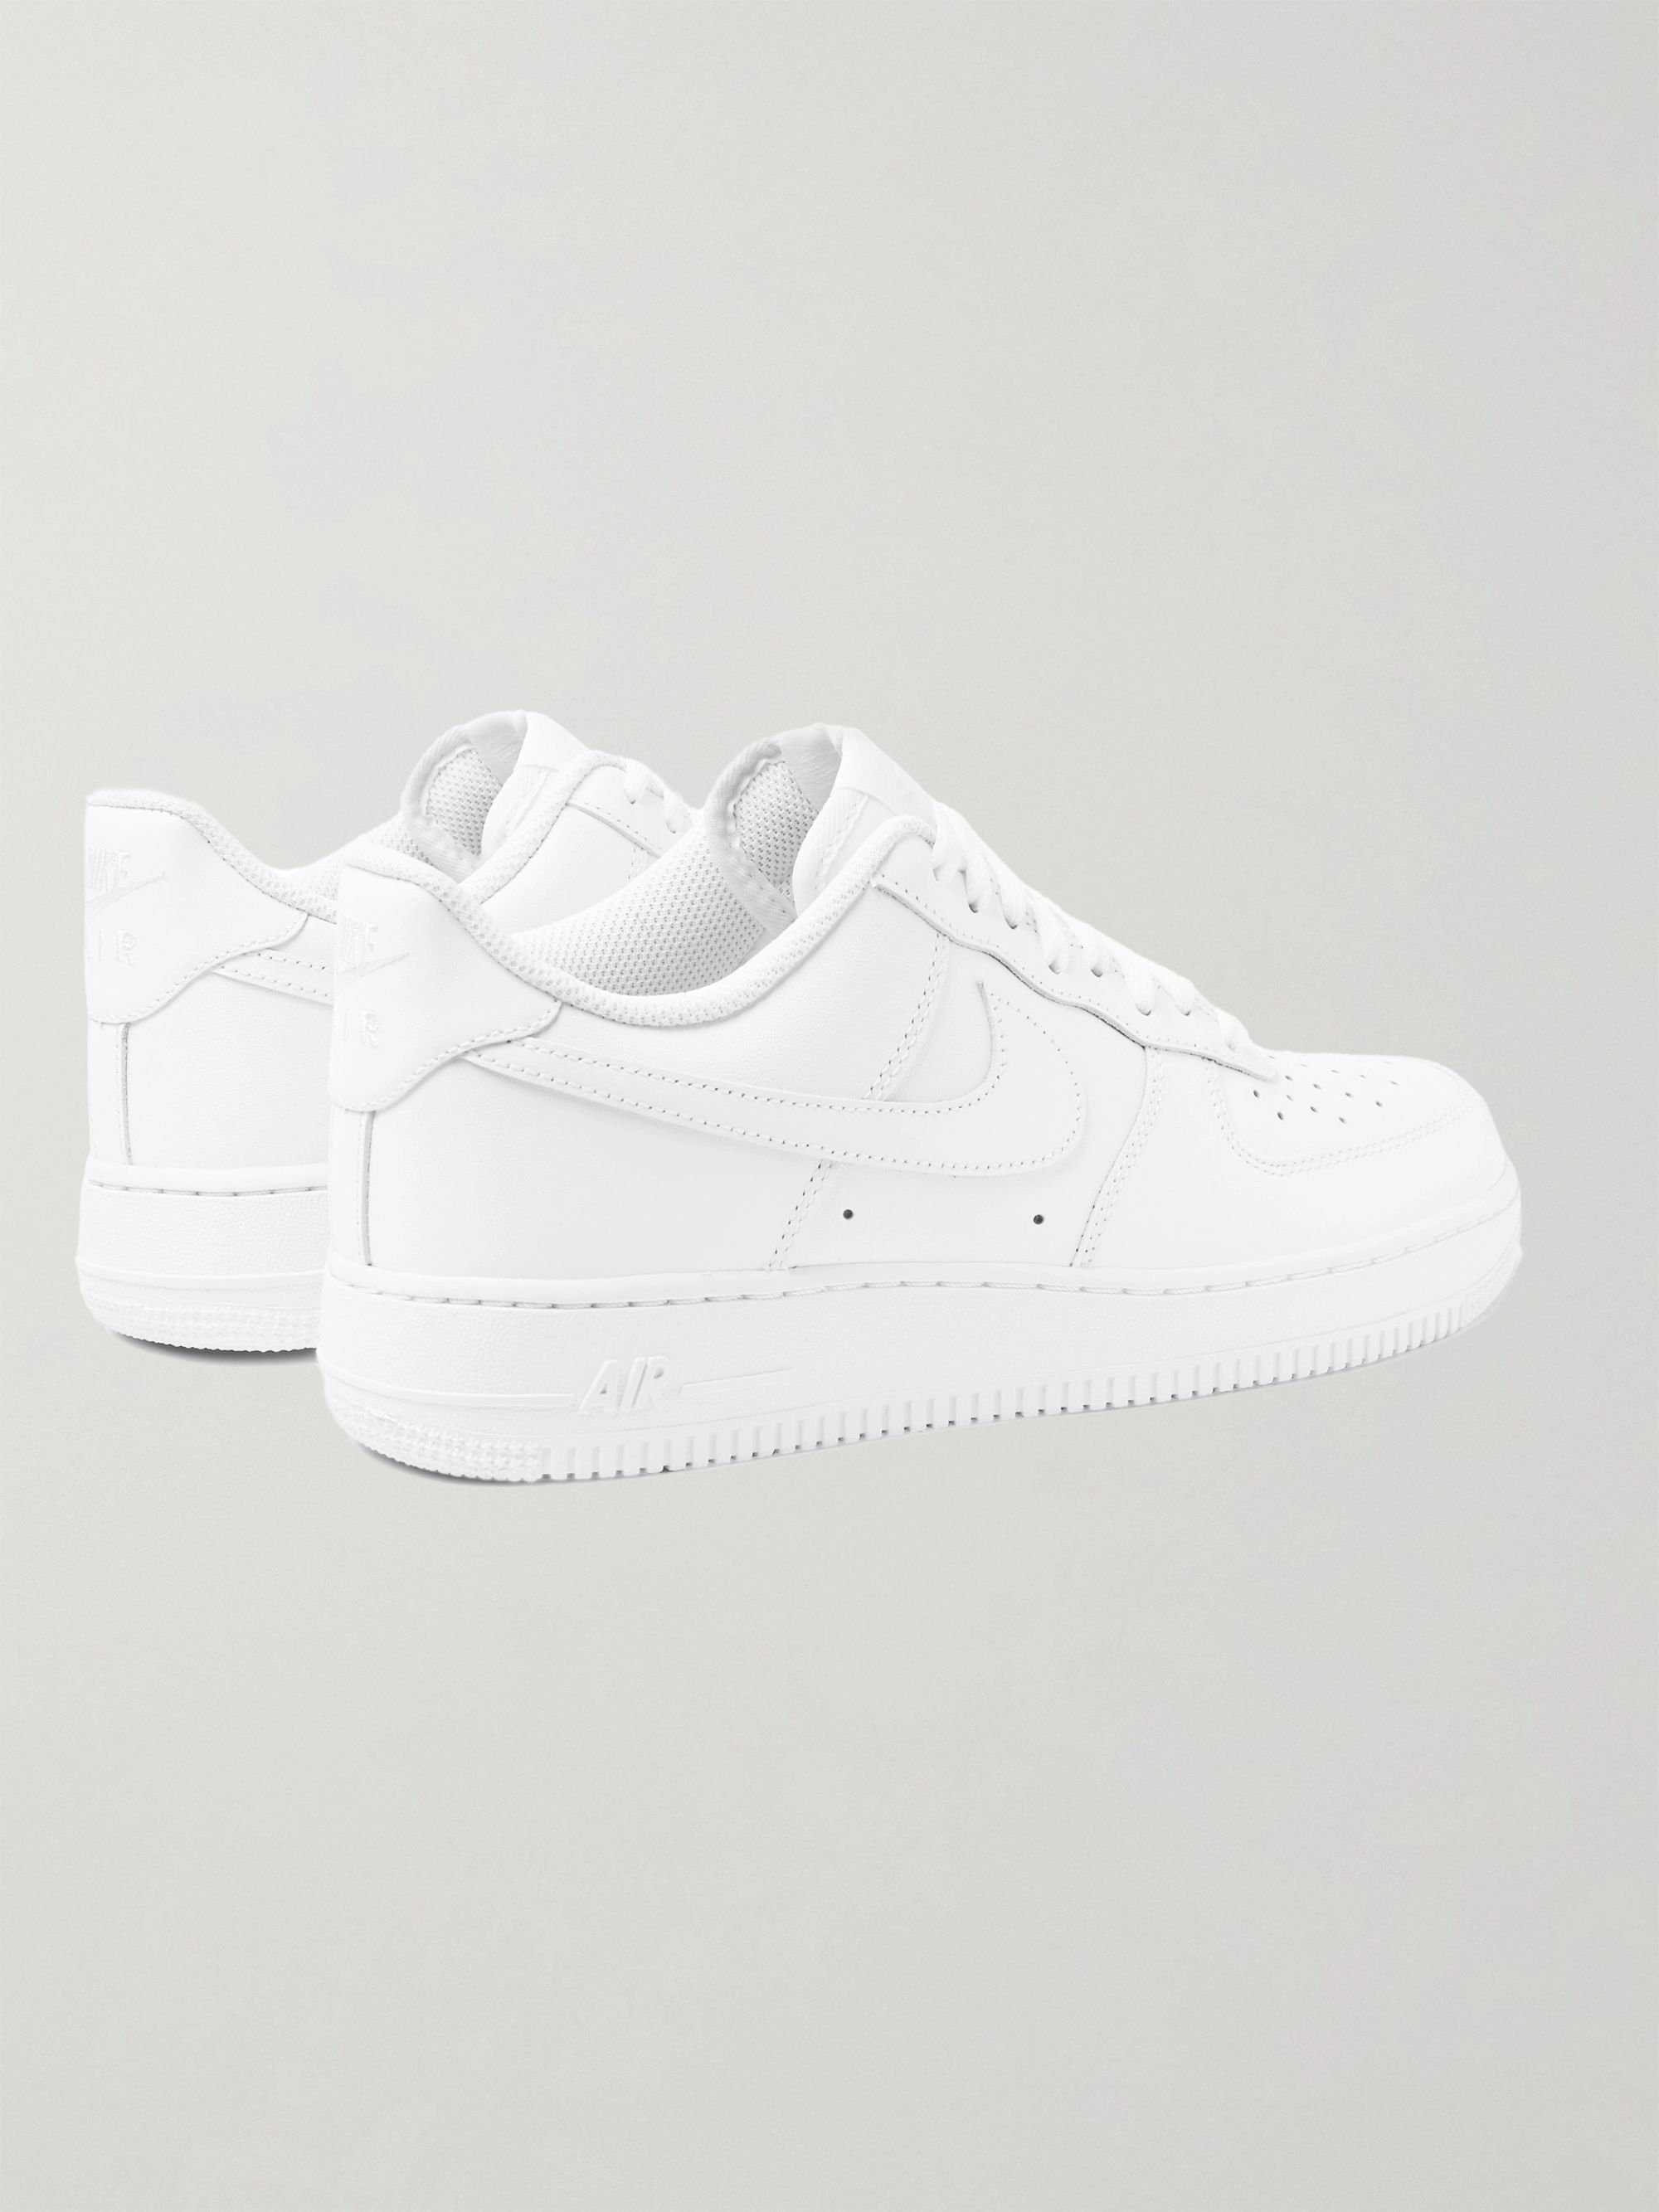 Nike Air Force 1 Low John Elliott White Size 10.5 NWT